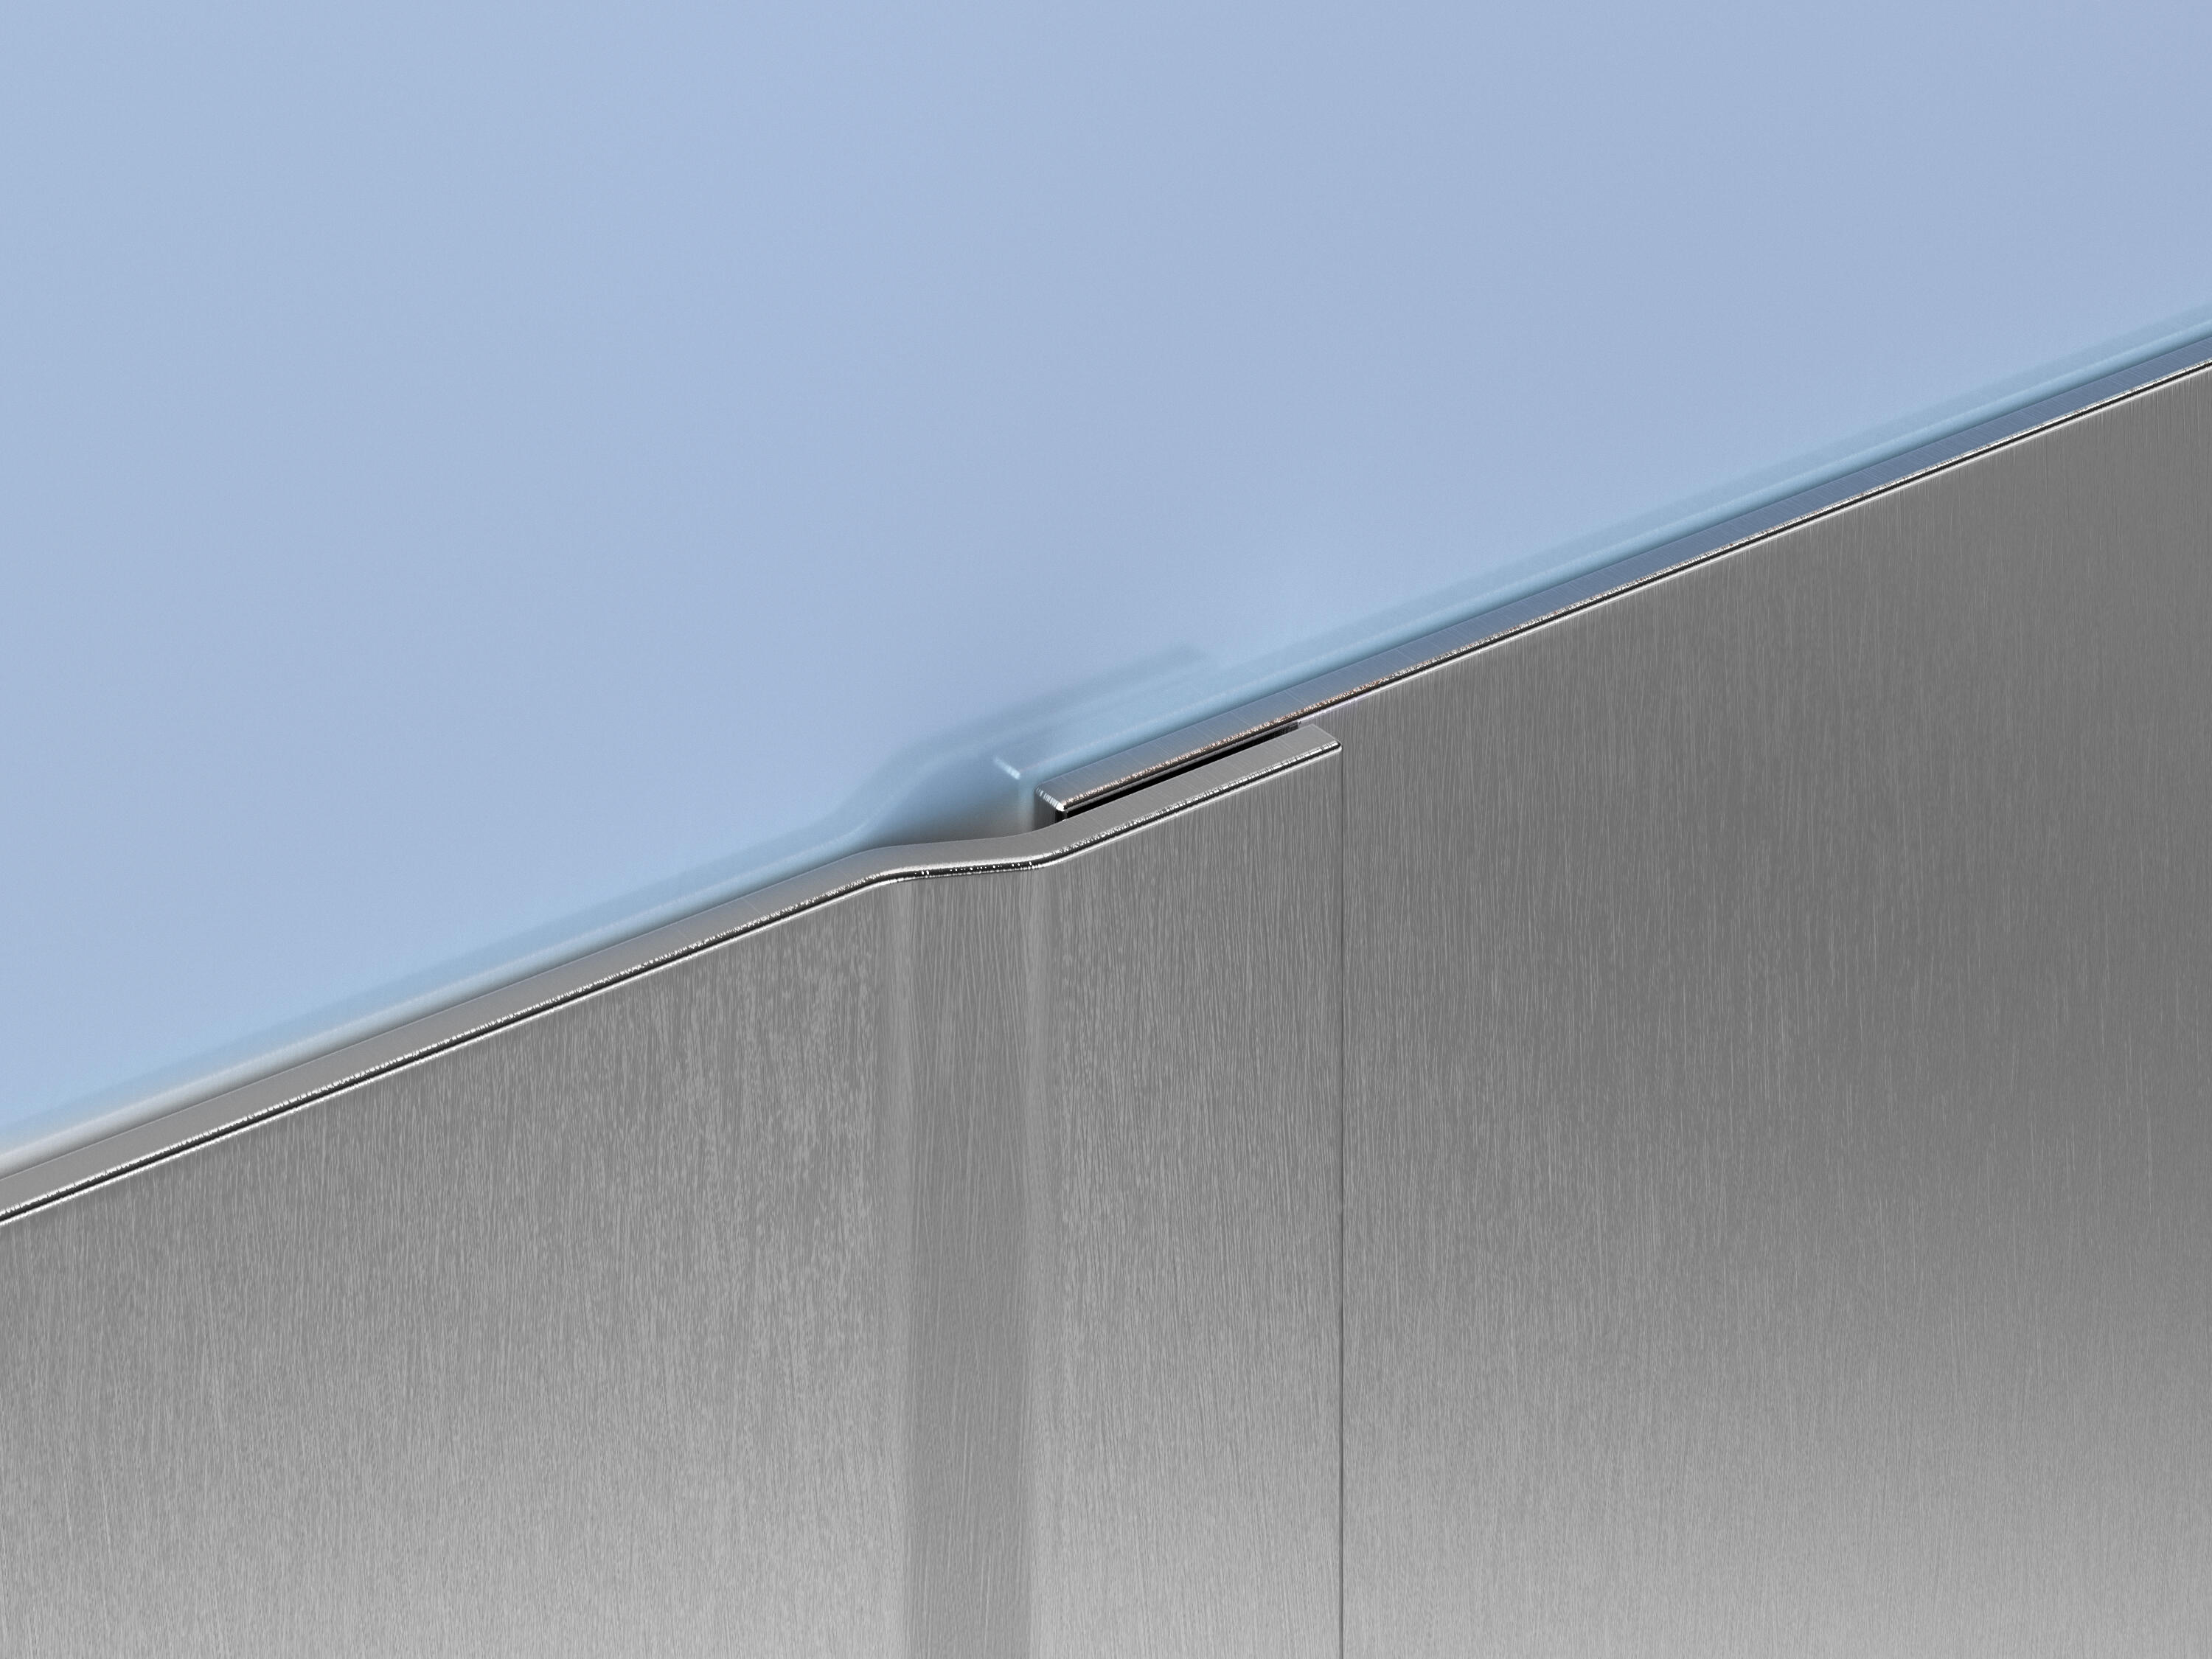 Stainless Steel Wall Protection